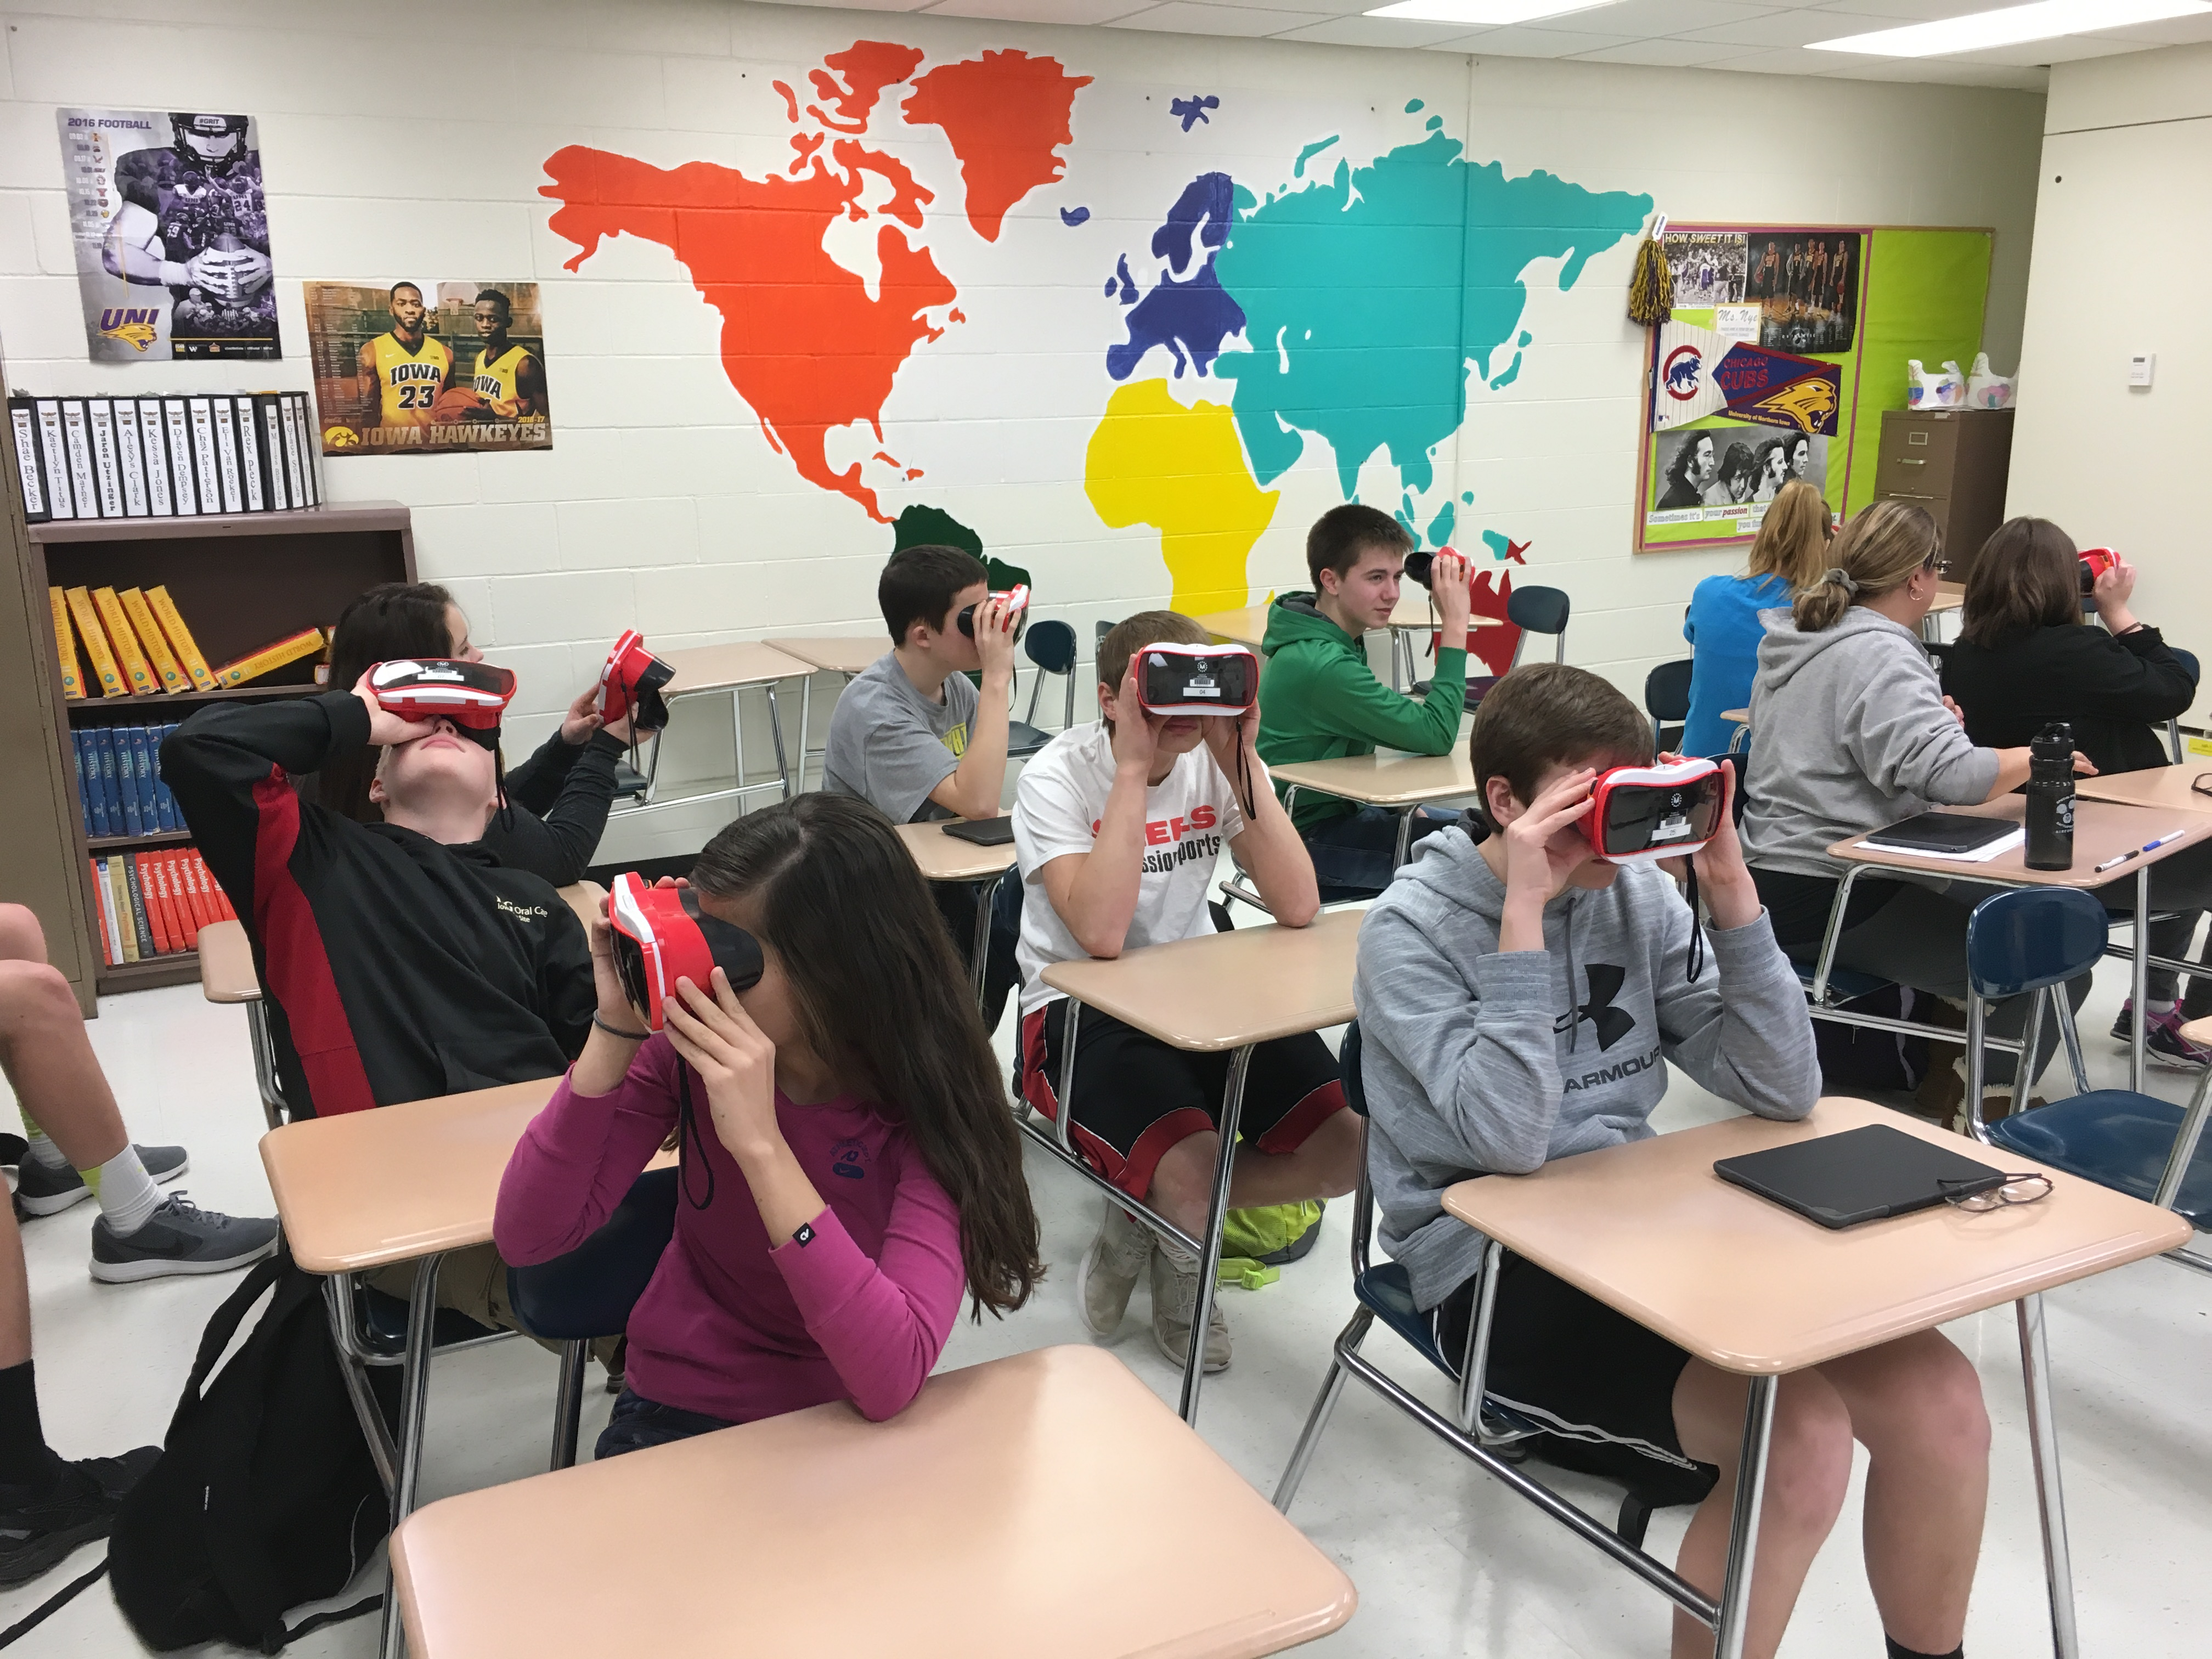 Students with virtual glasses on in a classroom